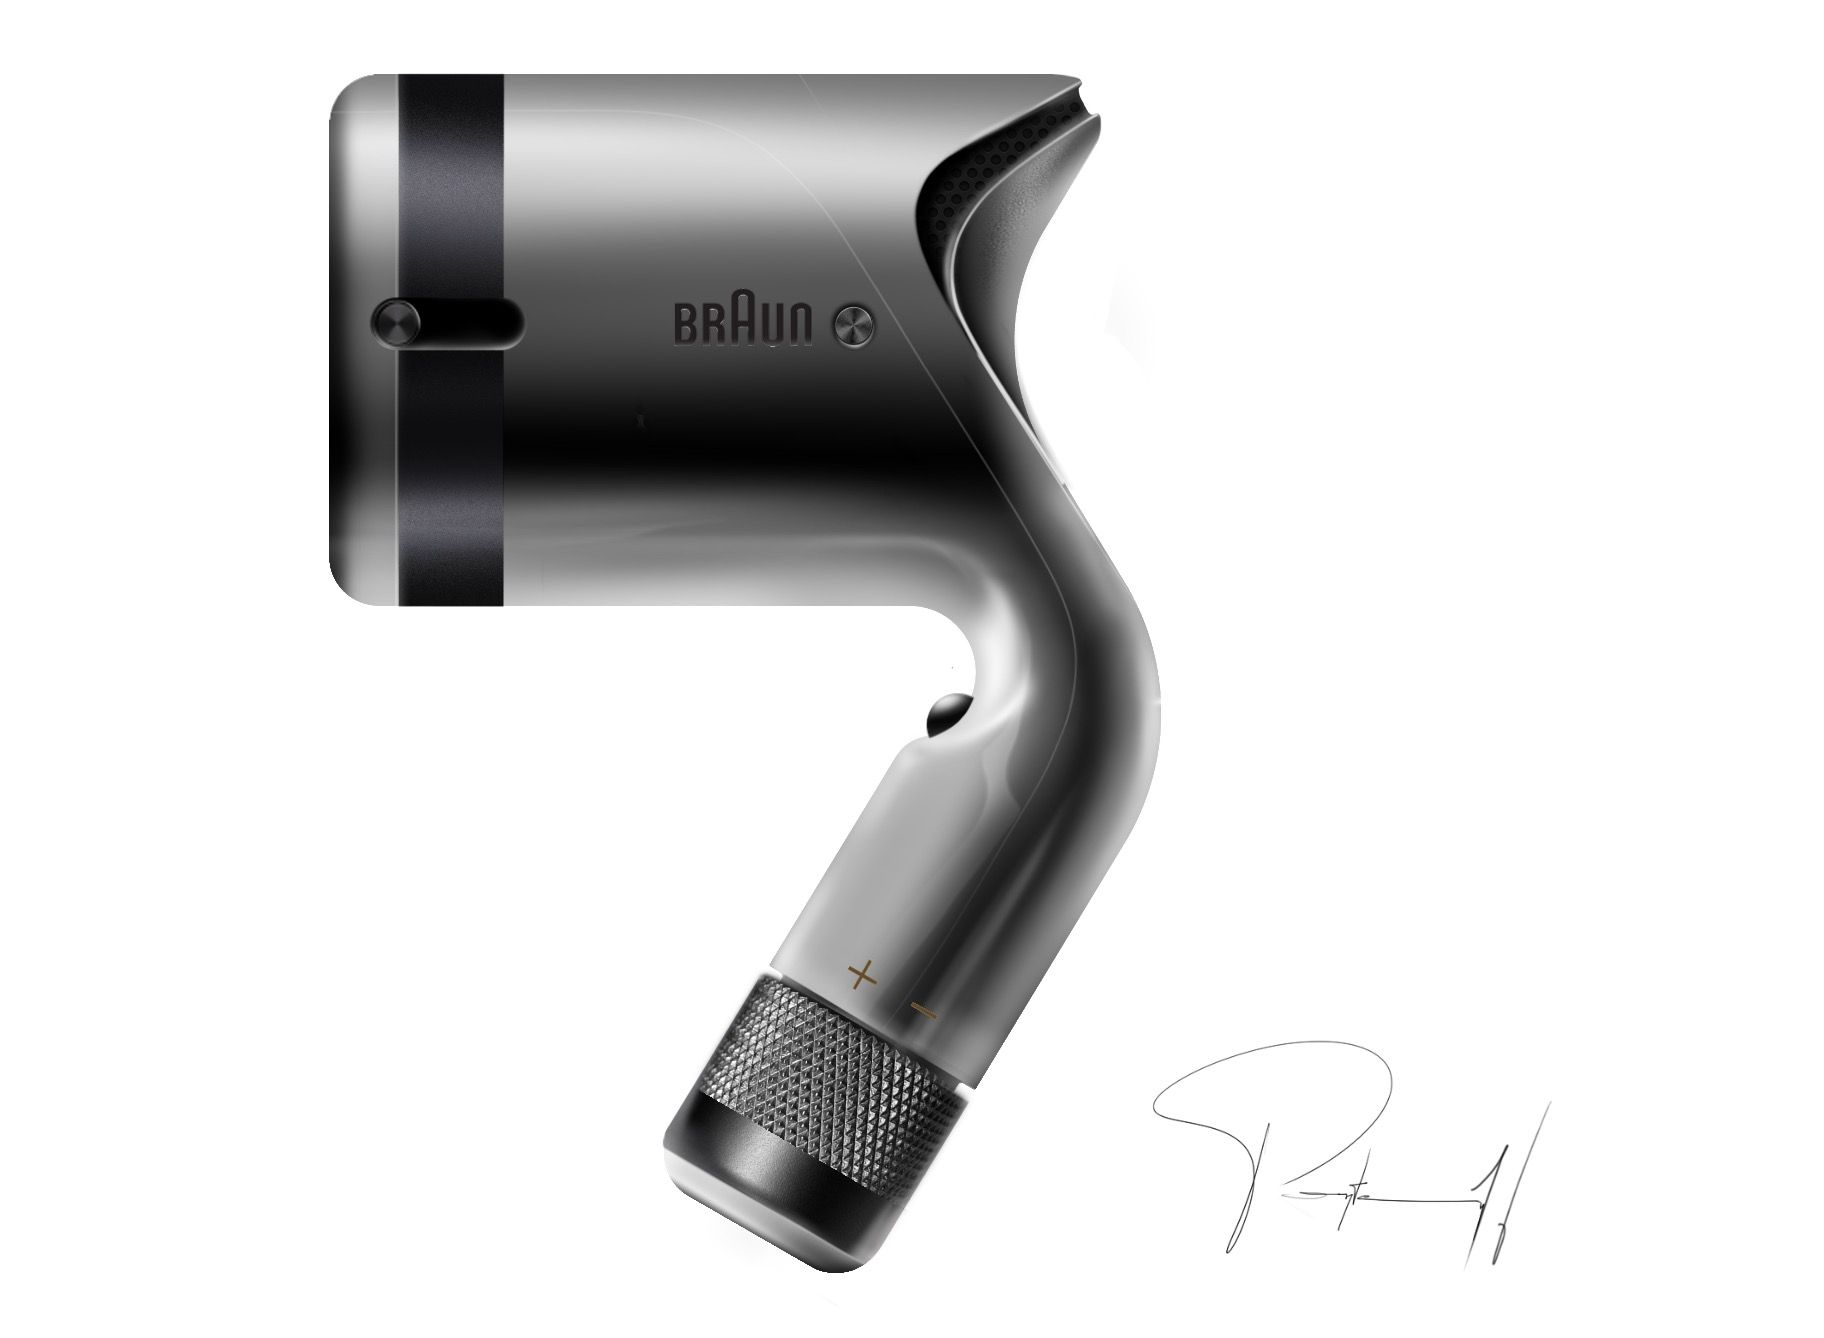 Hair Dryer Design ~ Beauty personal care hair styling tools